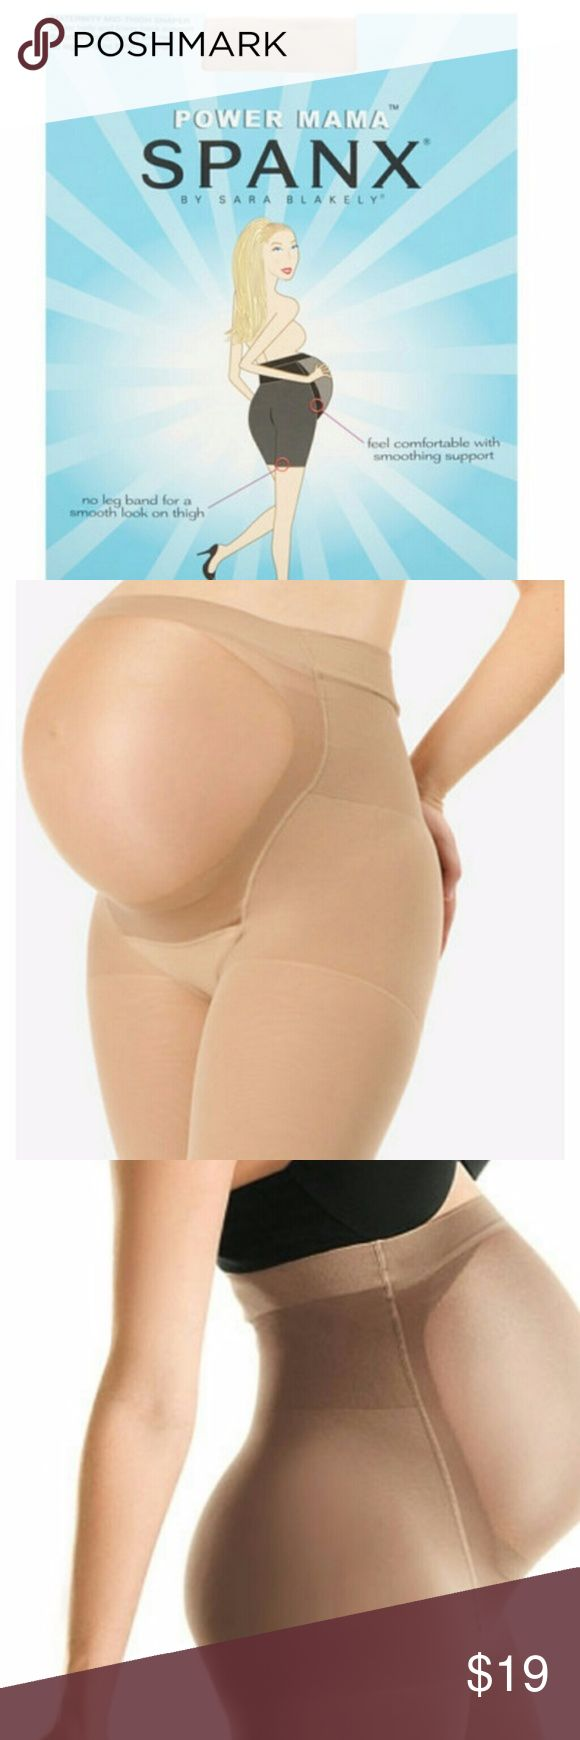 SPANX Power Mama Maternity Shaper Panty Sz A XS -S Maternity mid-thigh shaper. Underbelly and lower back support, smooth hips, thighs and rear. No leg band, no bulge on thigh. Soft sheer tummy panel grows with your belly! Comfortable extra- wide waistband is non-binding. Avoid VPL, (visible panty lines). Color is NUDE. Size is A , XS to S .  No offers on new items, please.  Brand new in package!  Enjoy your pregnancy! SPANX Intimates & Sleepwear Shapewear